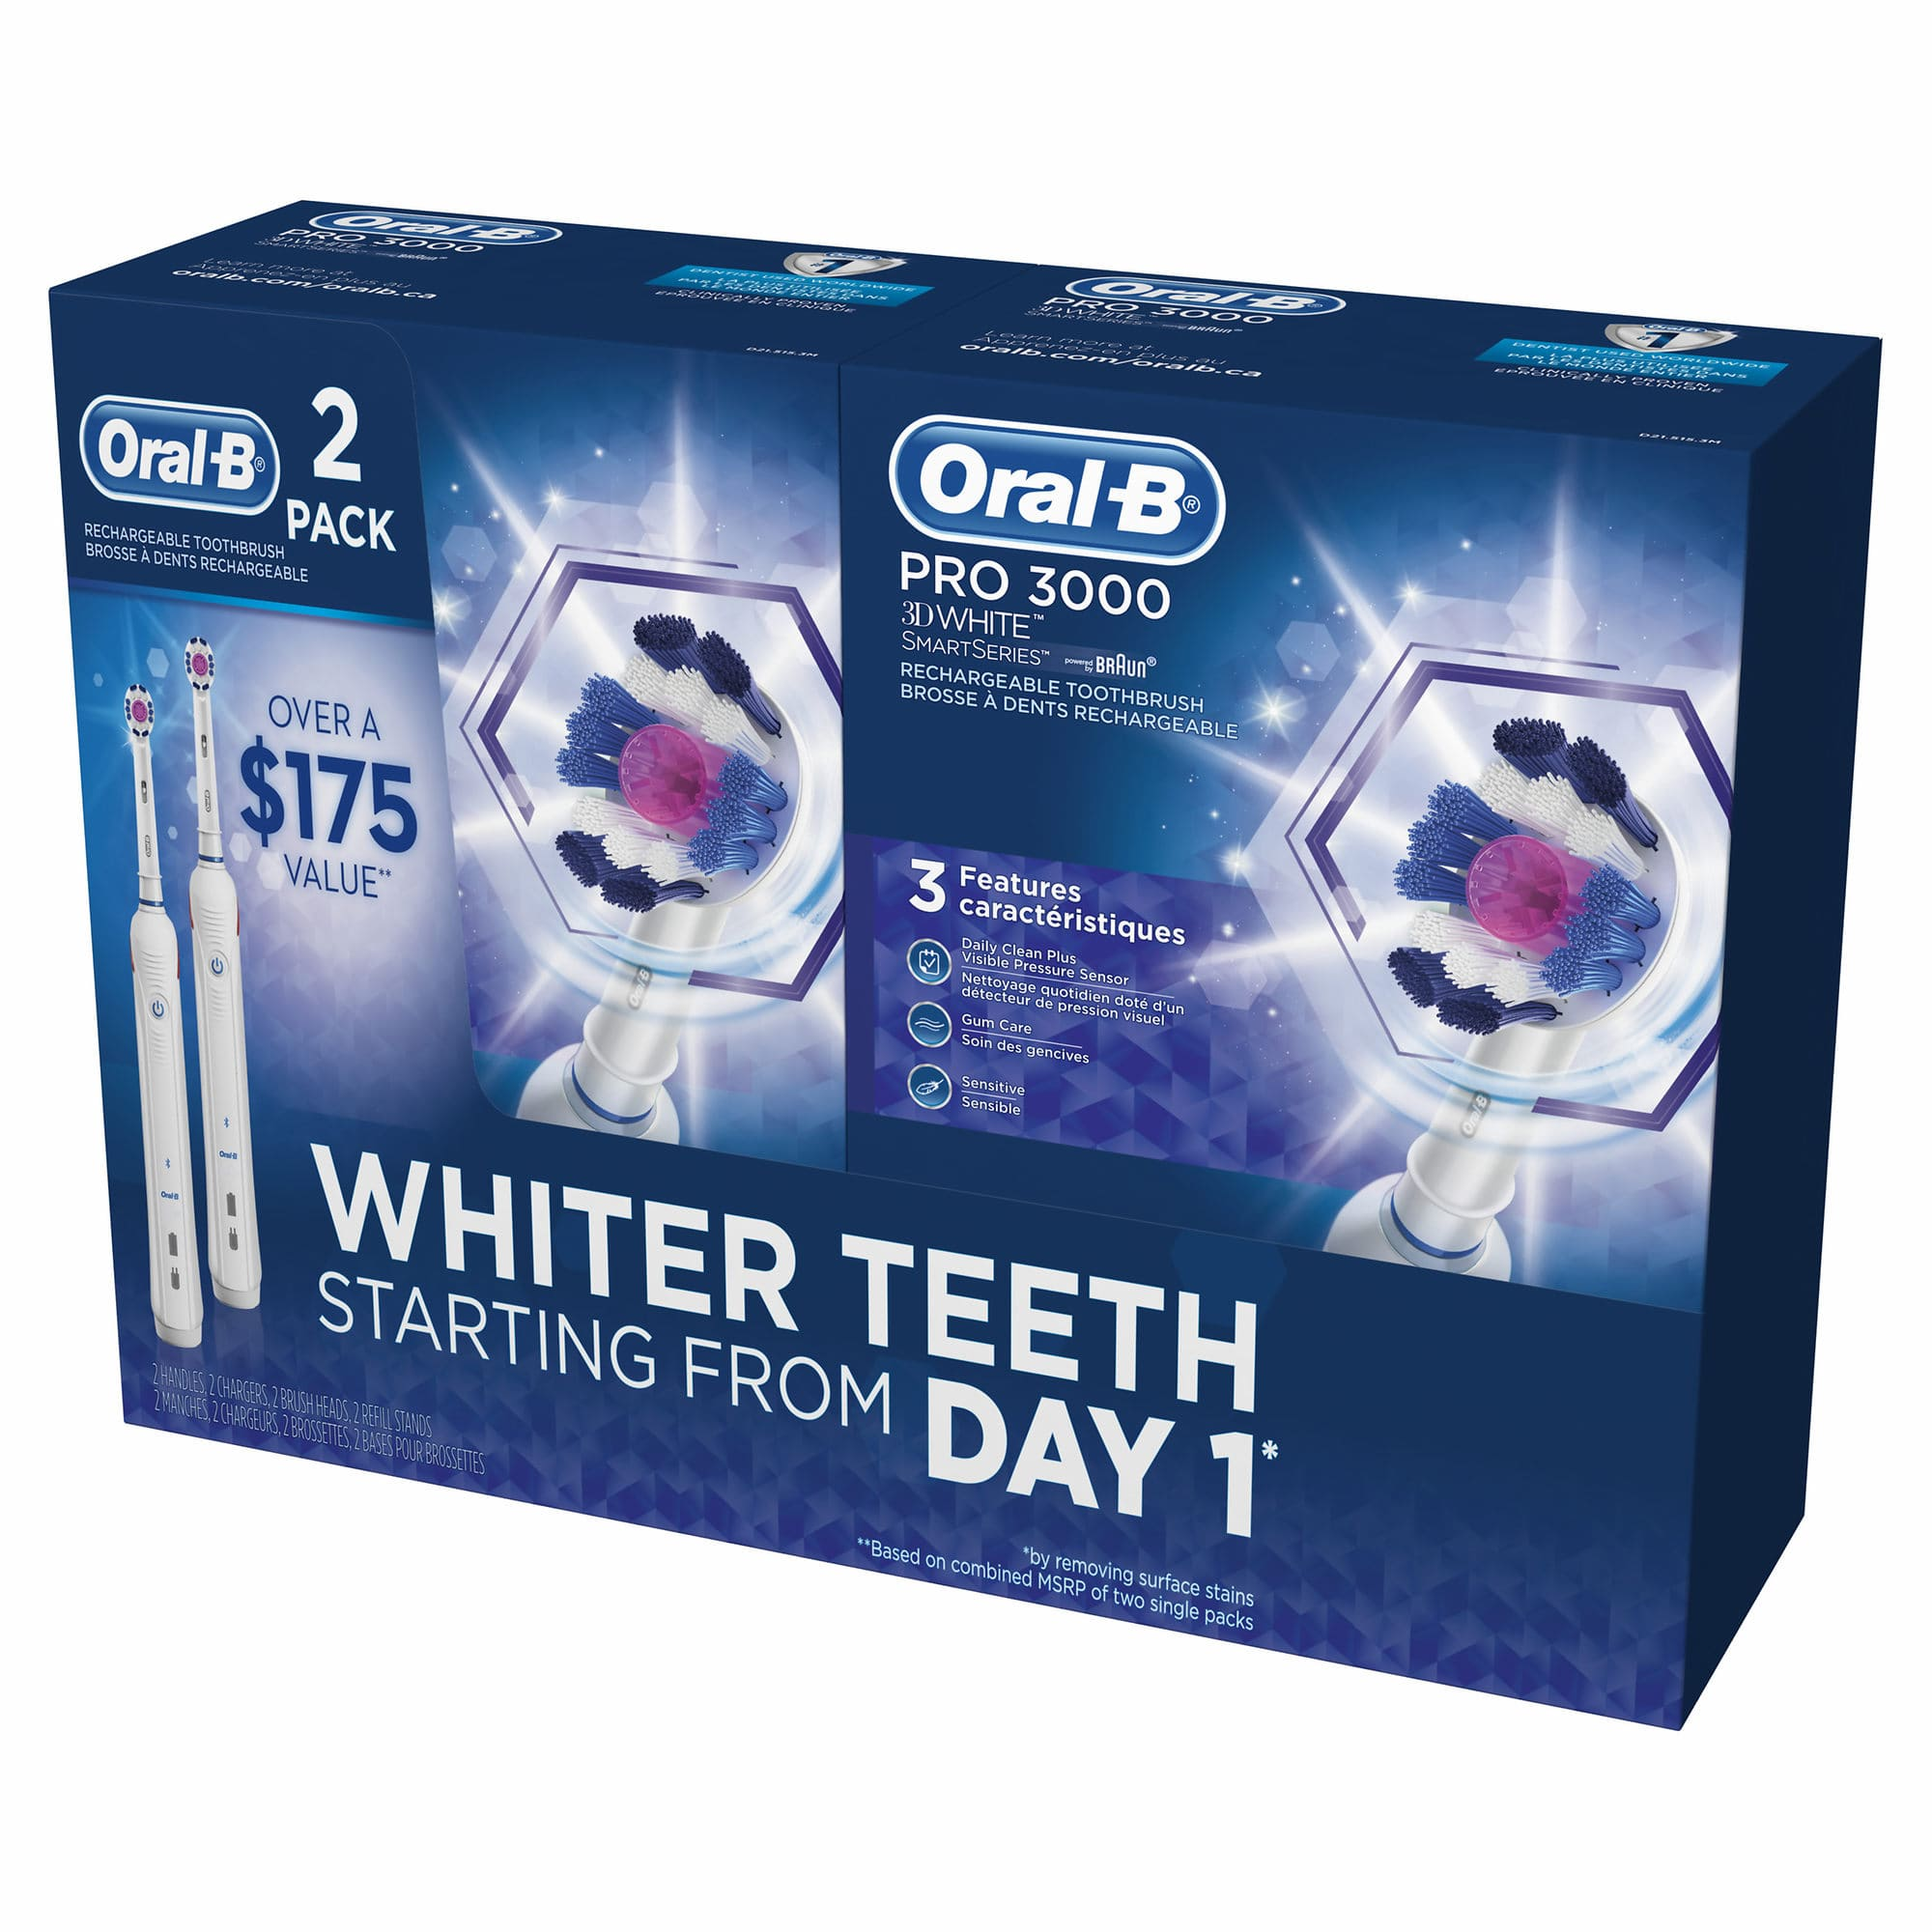 Oral-B 3000 3D White Electric Toothbrush. As Low As $17.49 Each In Two-Pack. YMMV